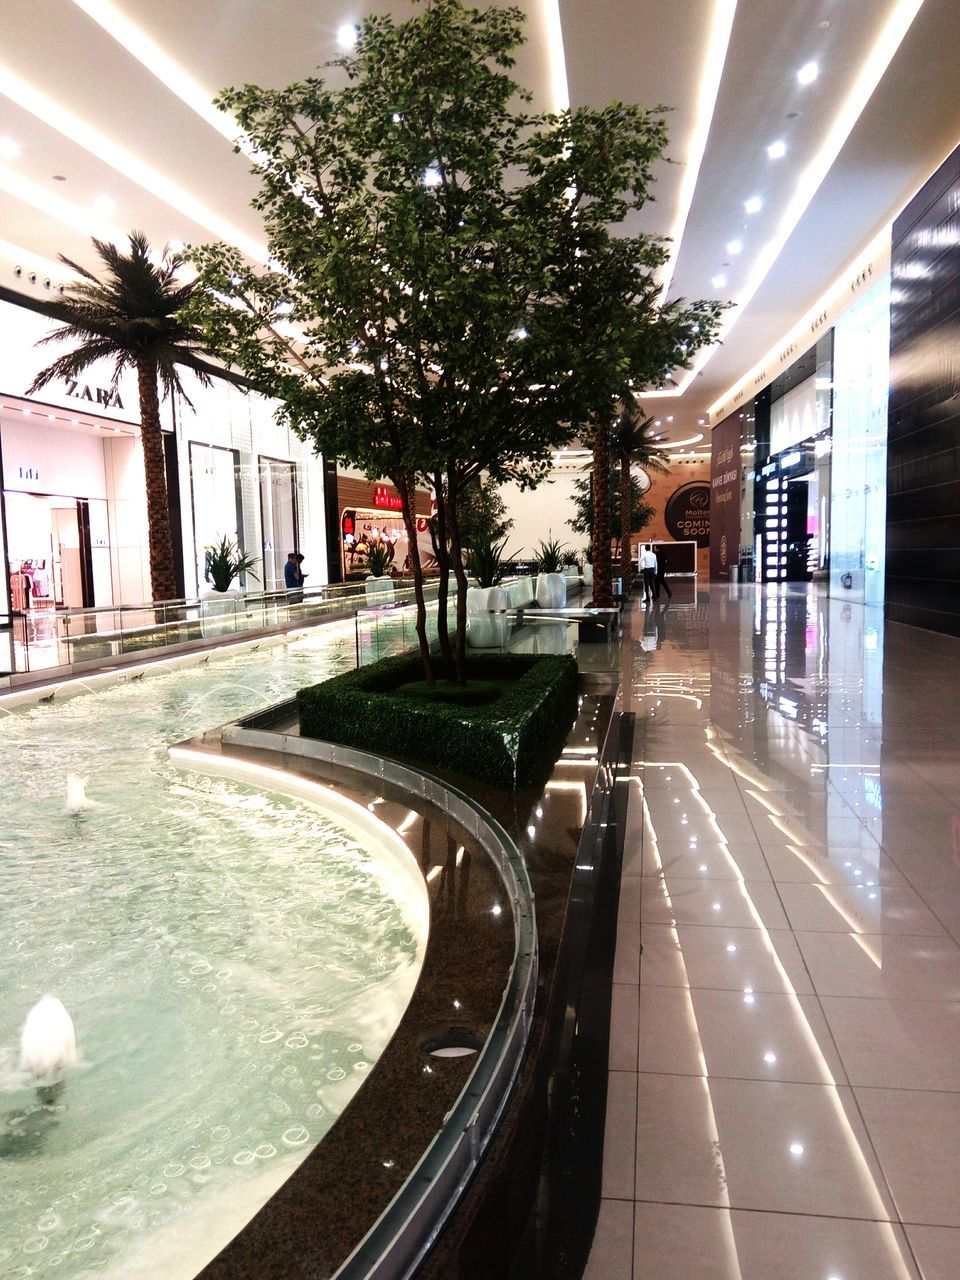 illuminated, architecture, indoors, built structure, water, tree, day, no people